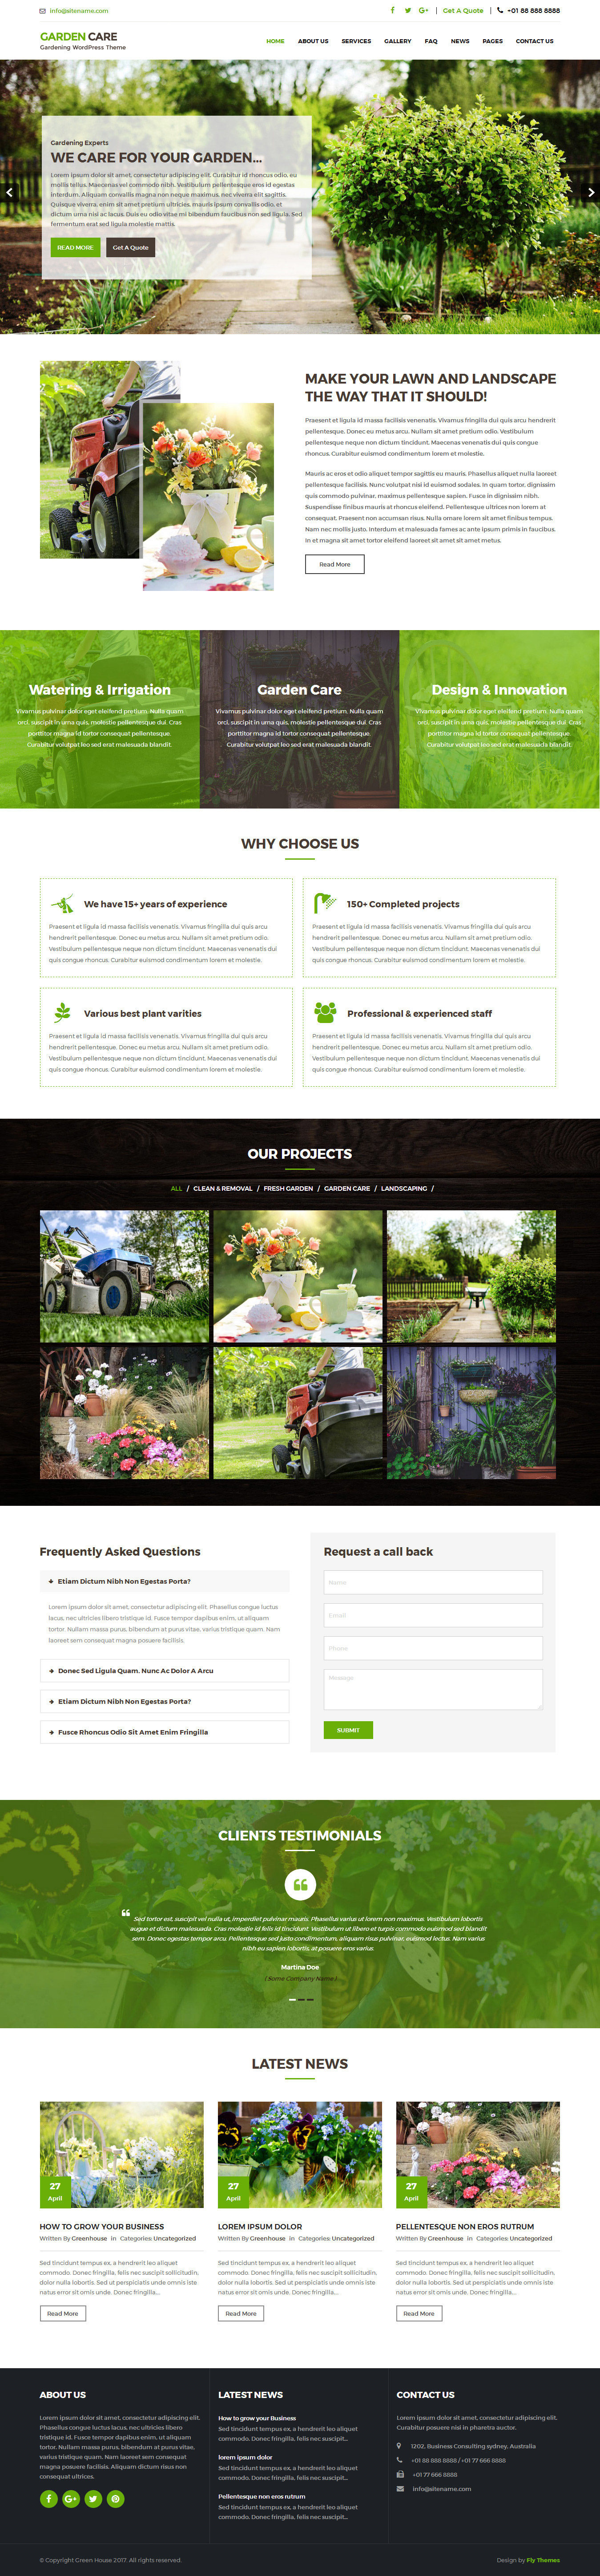 greenhouse-garden-wordrpess-theme